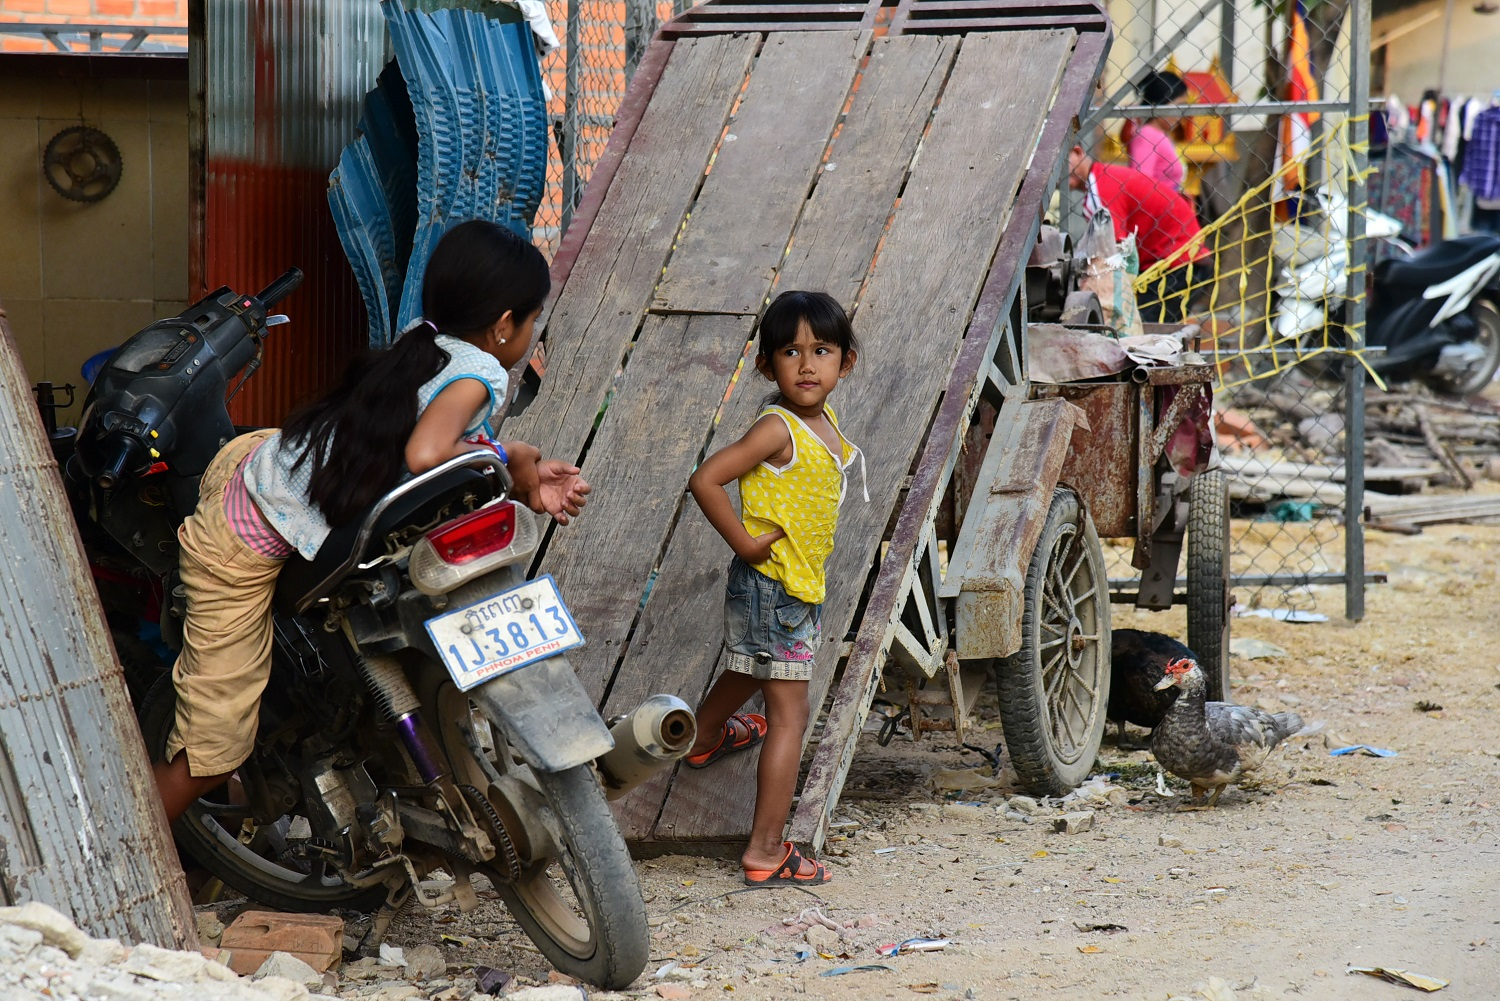 Many residents of Thmor Kol village were forced to move out without compensation.